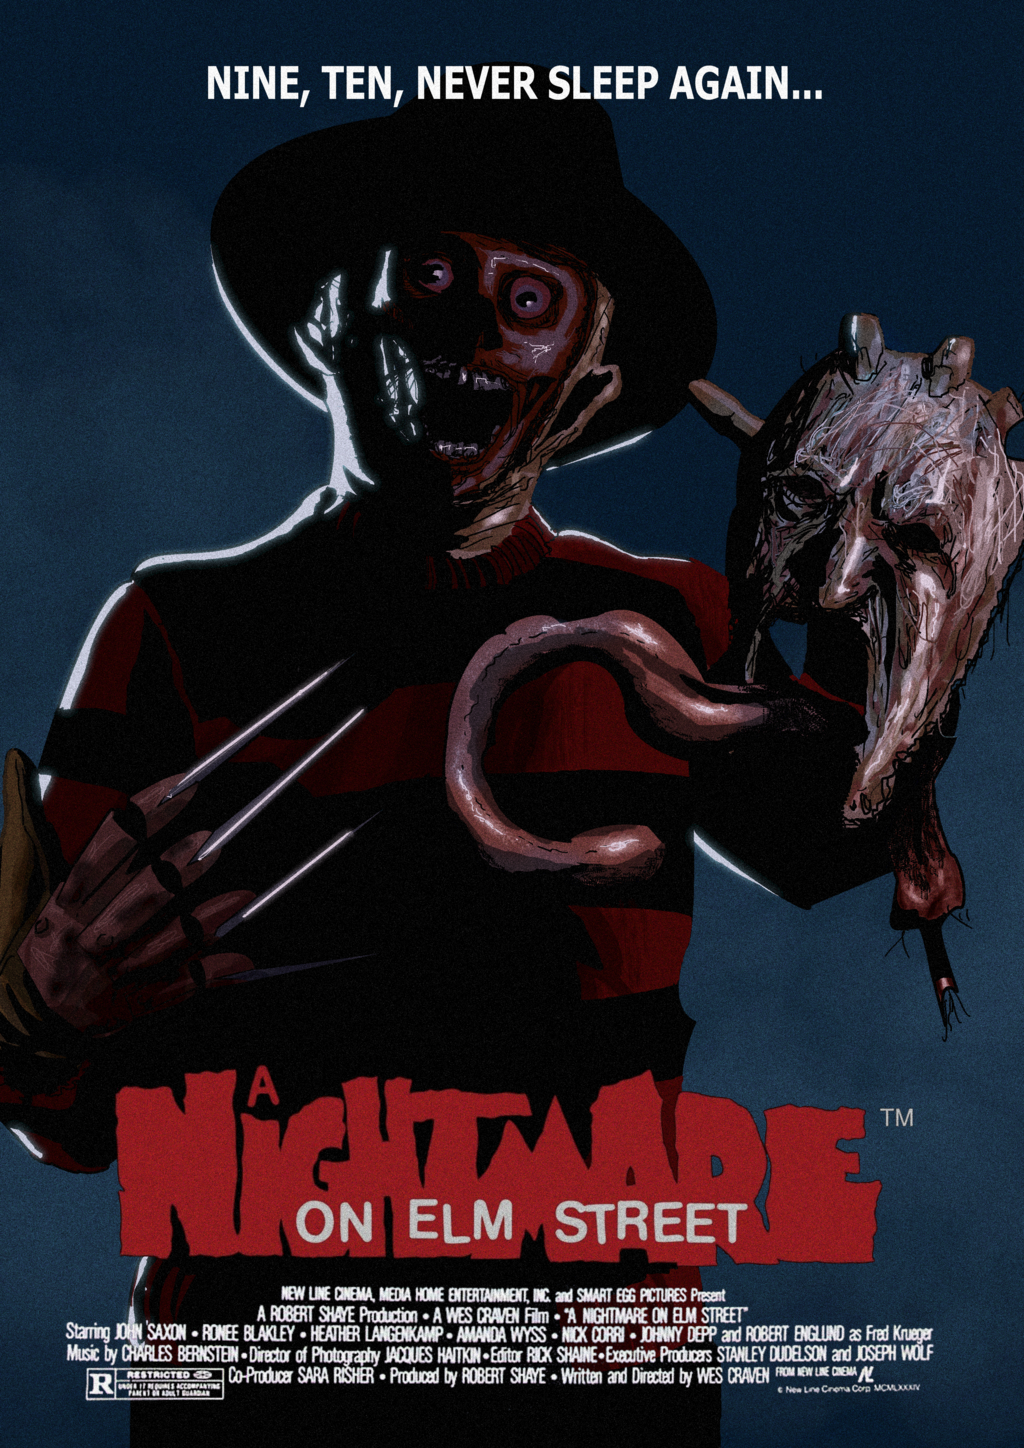 A nightmare on Elm Street: Fans have ceased to recognize Ani Lorak 07/19/2018 39